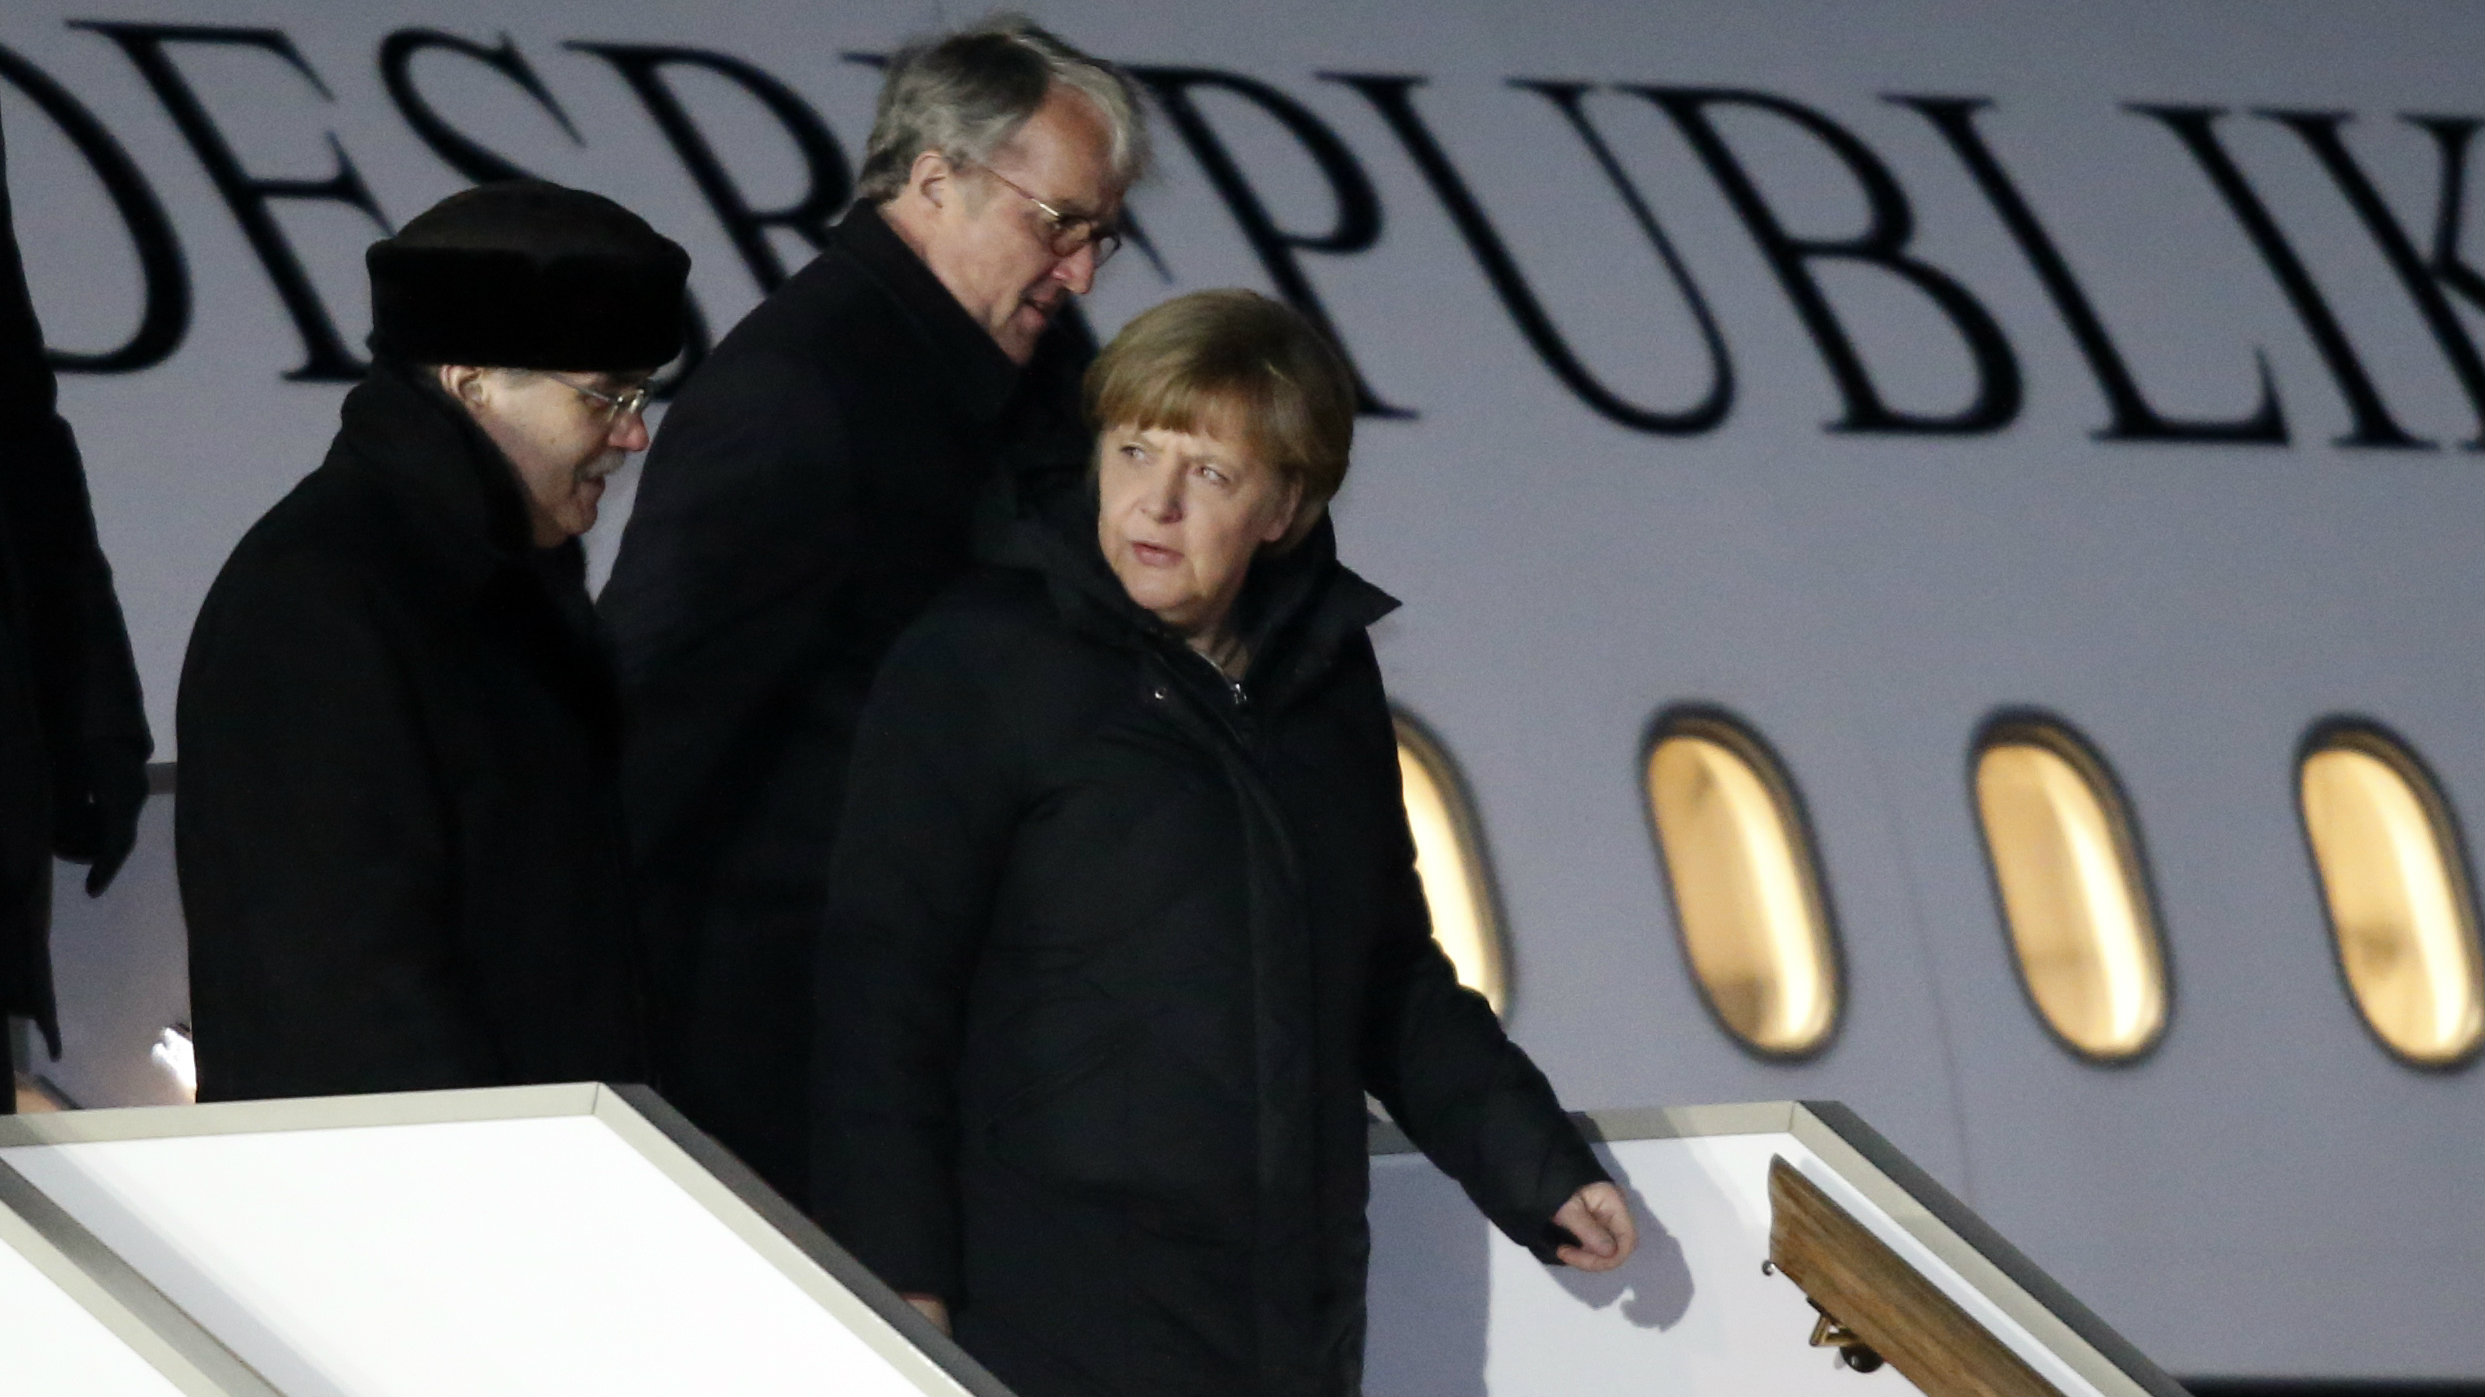 German Chancellor Angela Merkel disembarks from a plane upon her arrival at Moscow's Vnukovo airport February 6, 2015.